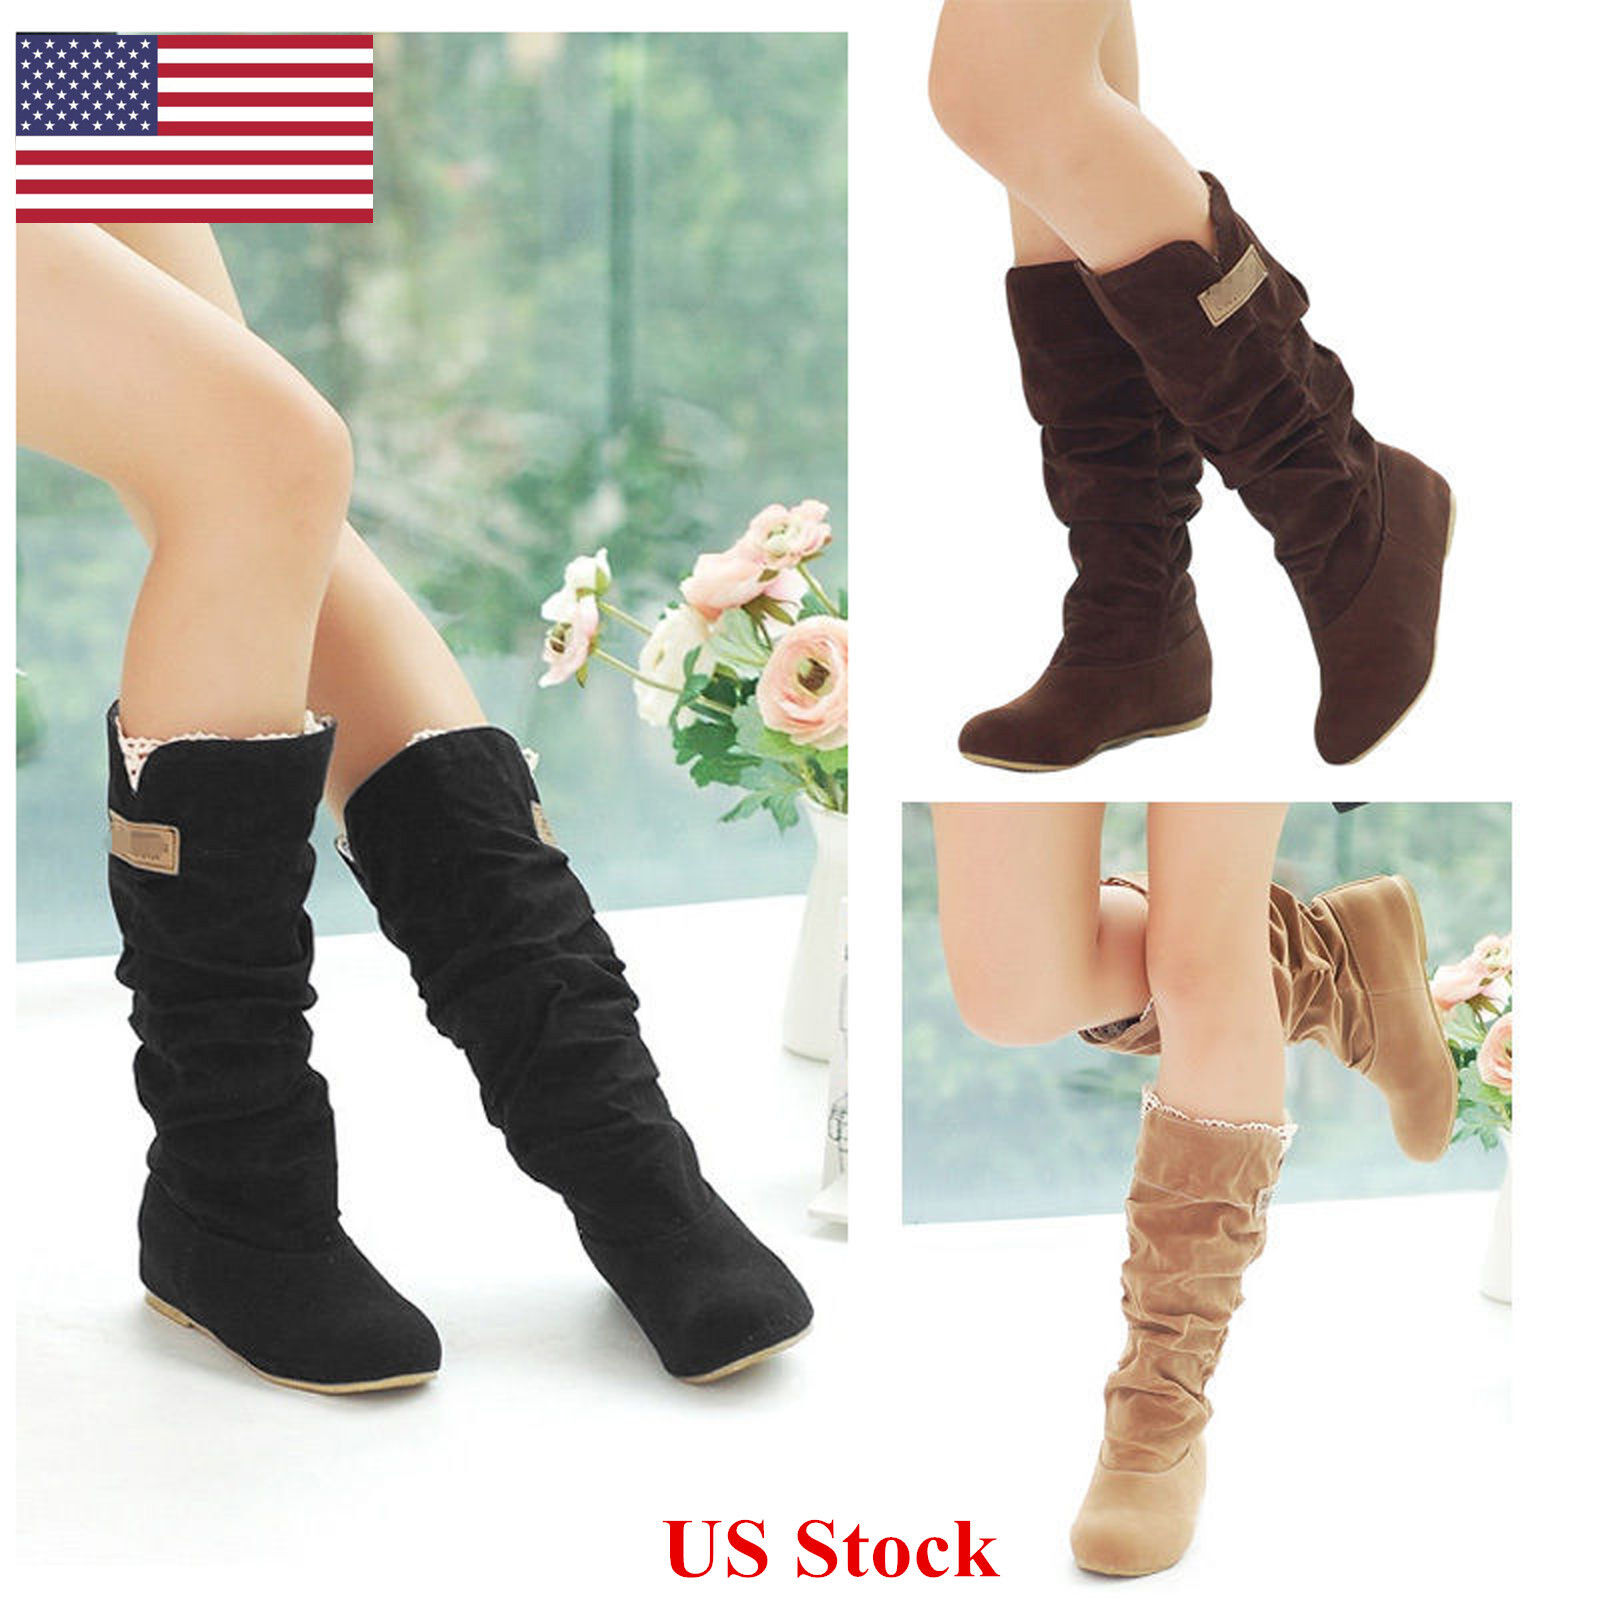 Boots - US Women's Fashion Boots Shoes Slouch Flat Mid Calf Knee High Riding Round Toe